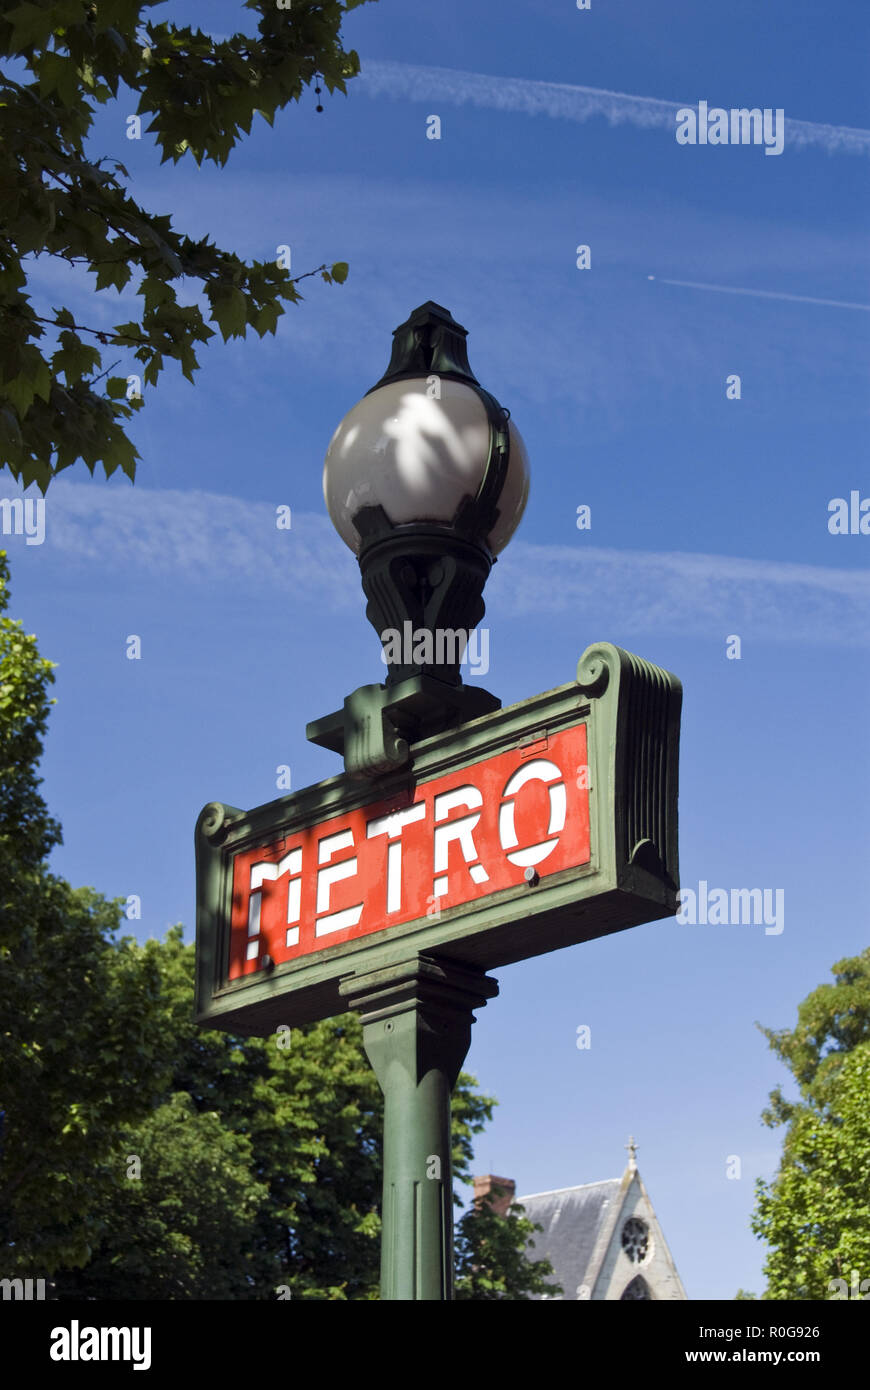 A colorful Metro (subway) sign and lamp on the Boulevard Saint-Germain, Paris, France. - Stock Image